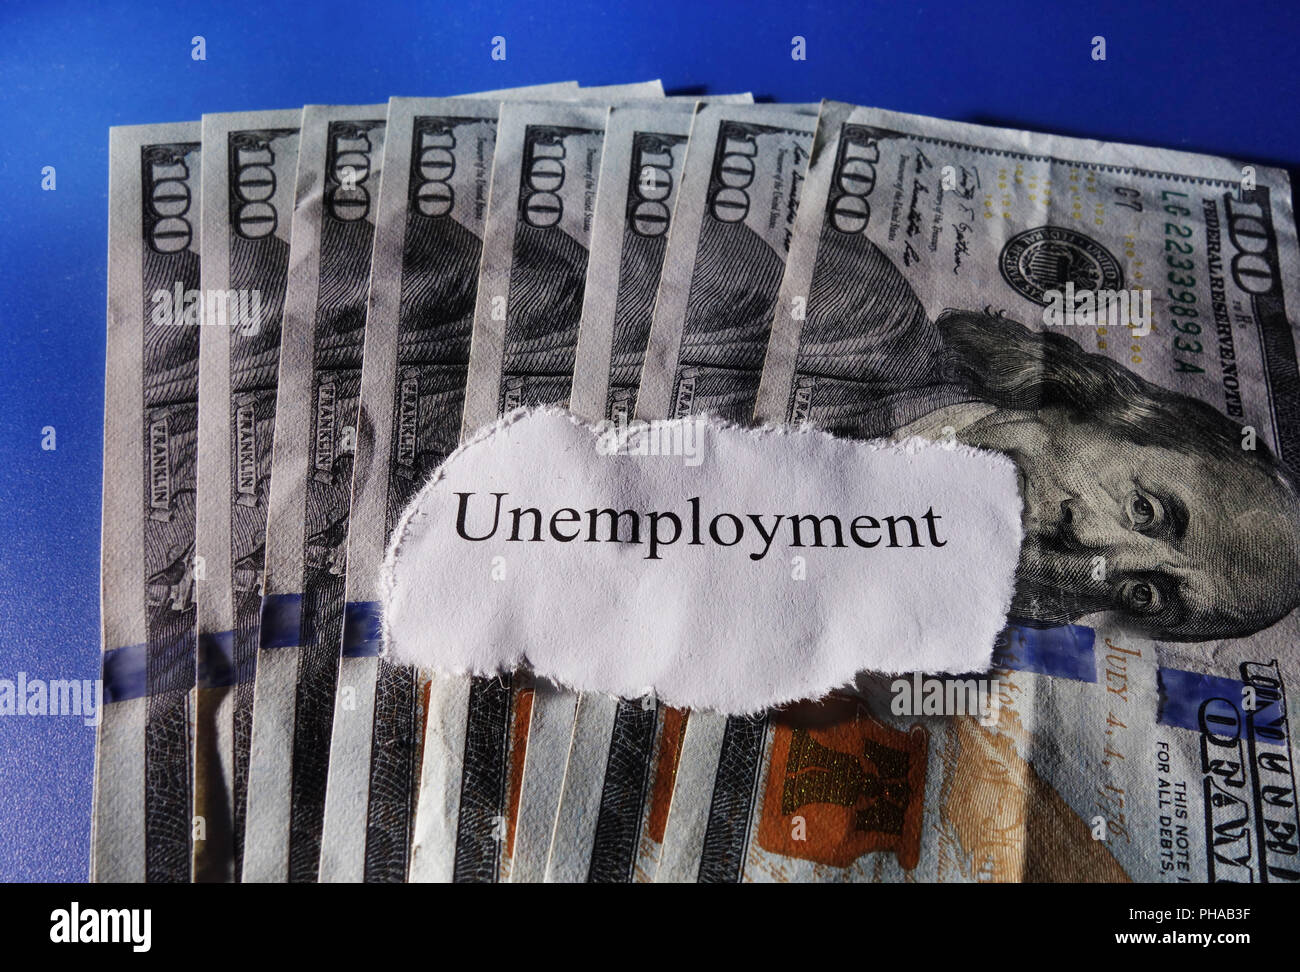 unemployment - Stock Image